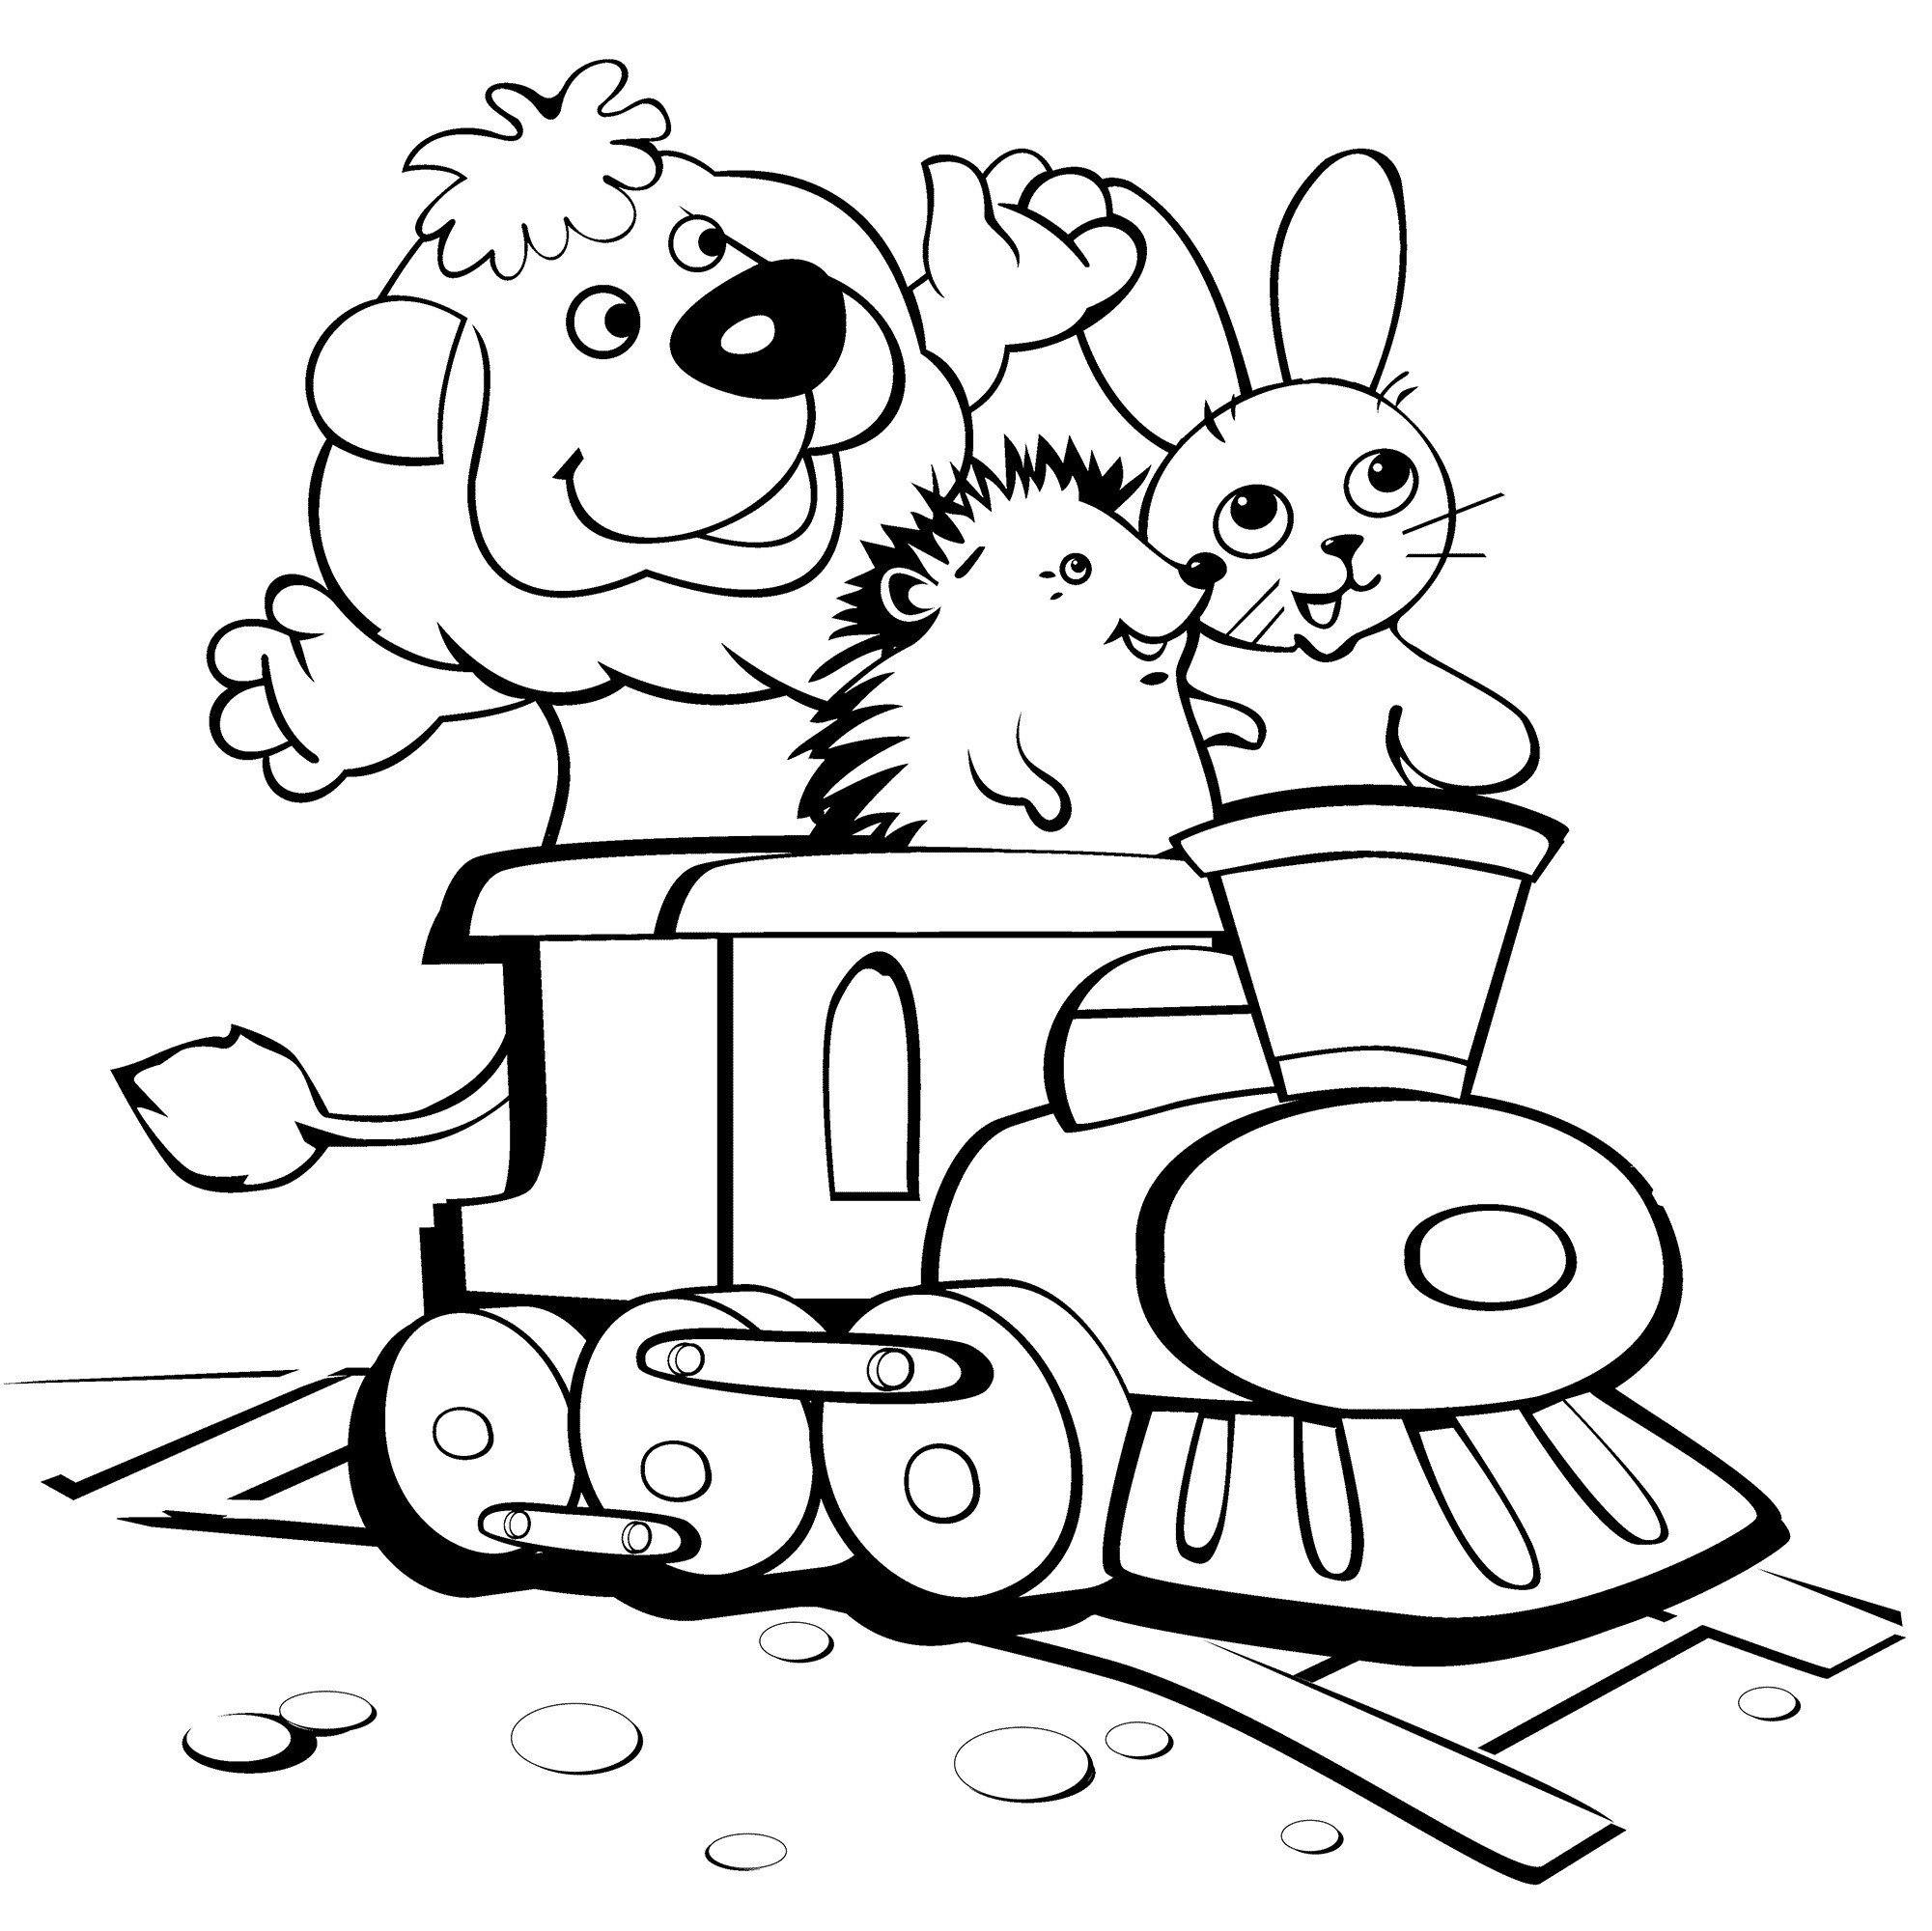 Printable Coloring Pages Kids  Free Printable Funny Coloring Pages For Kids